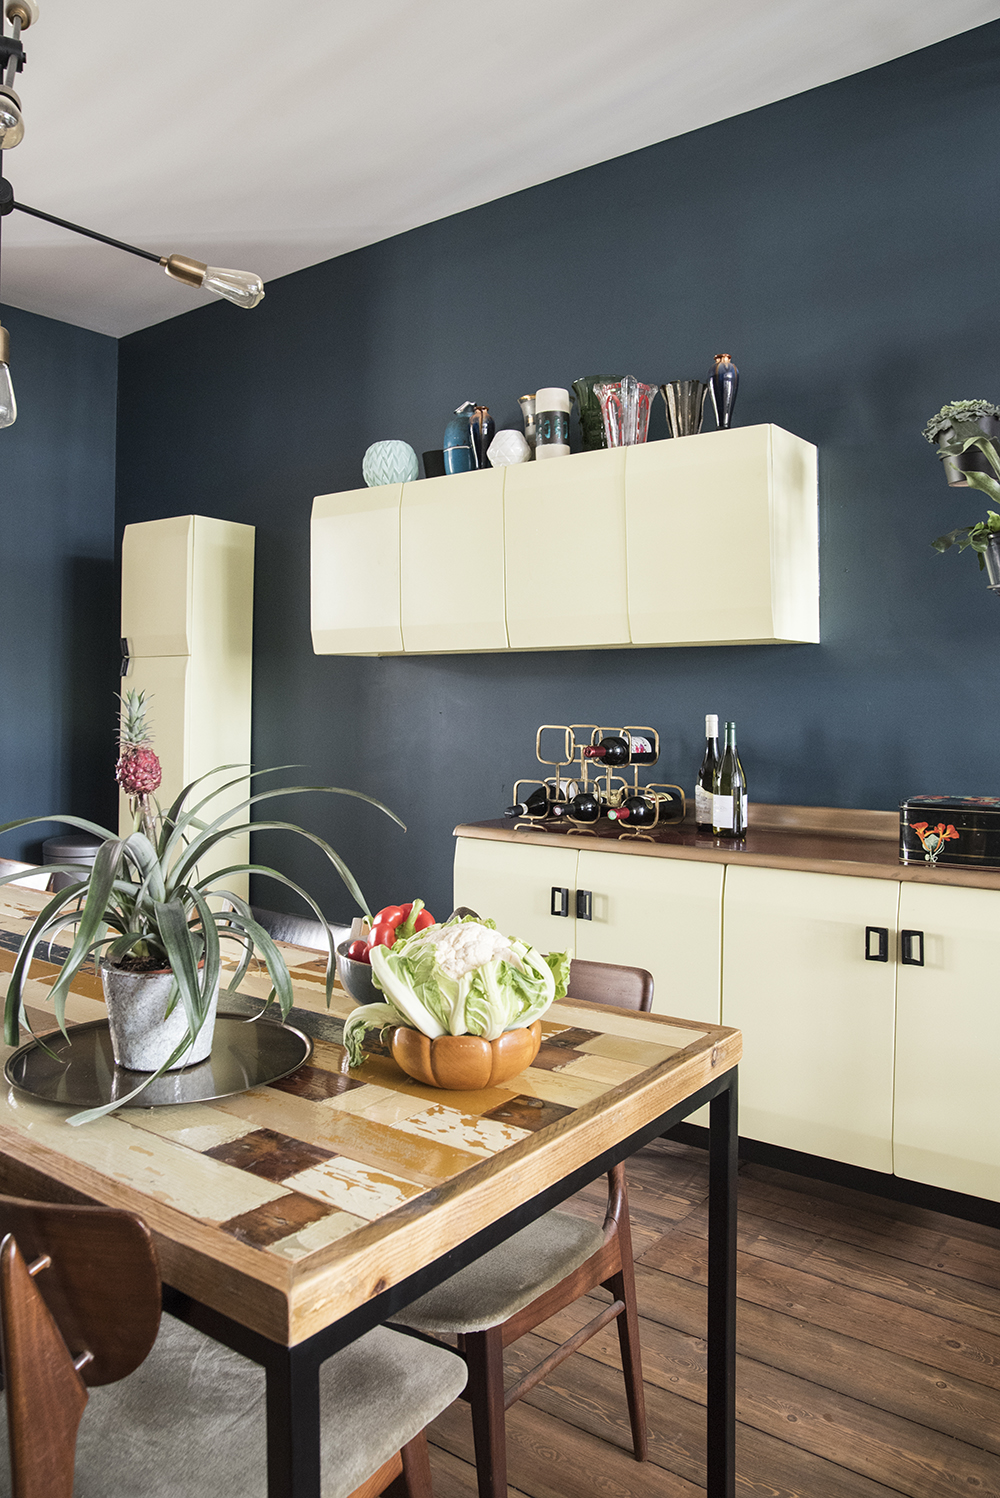 Moody kitchen in blue hues // Farrow & Ball Hague Blue and yellow vintage cabinets